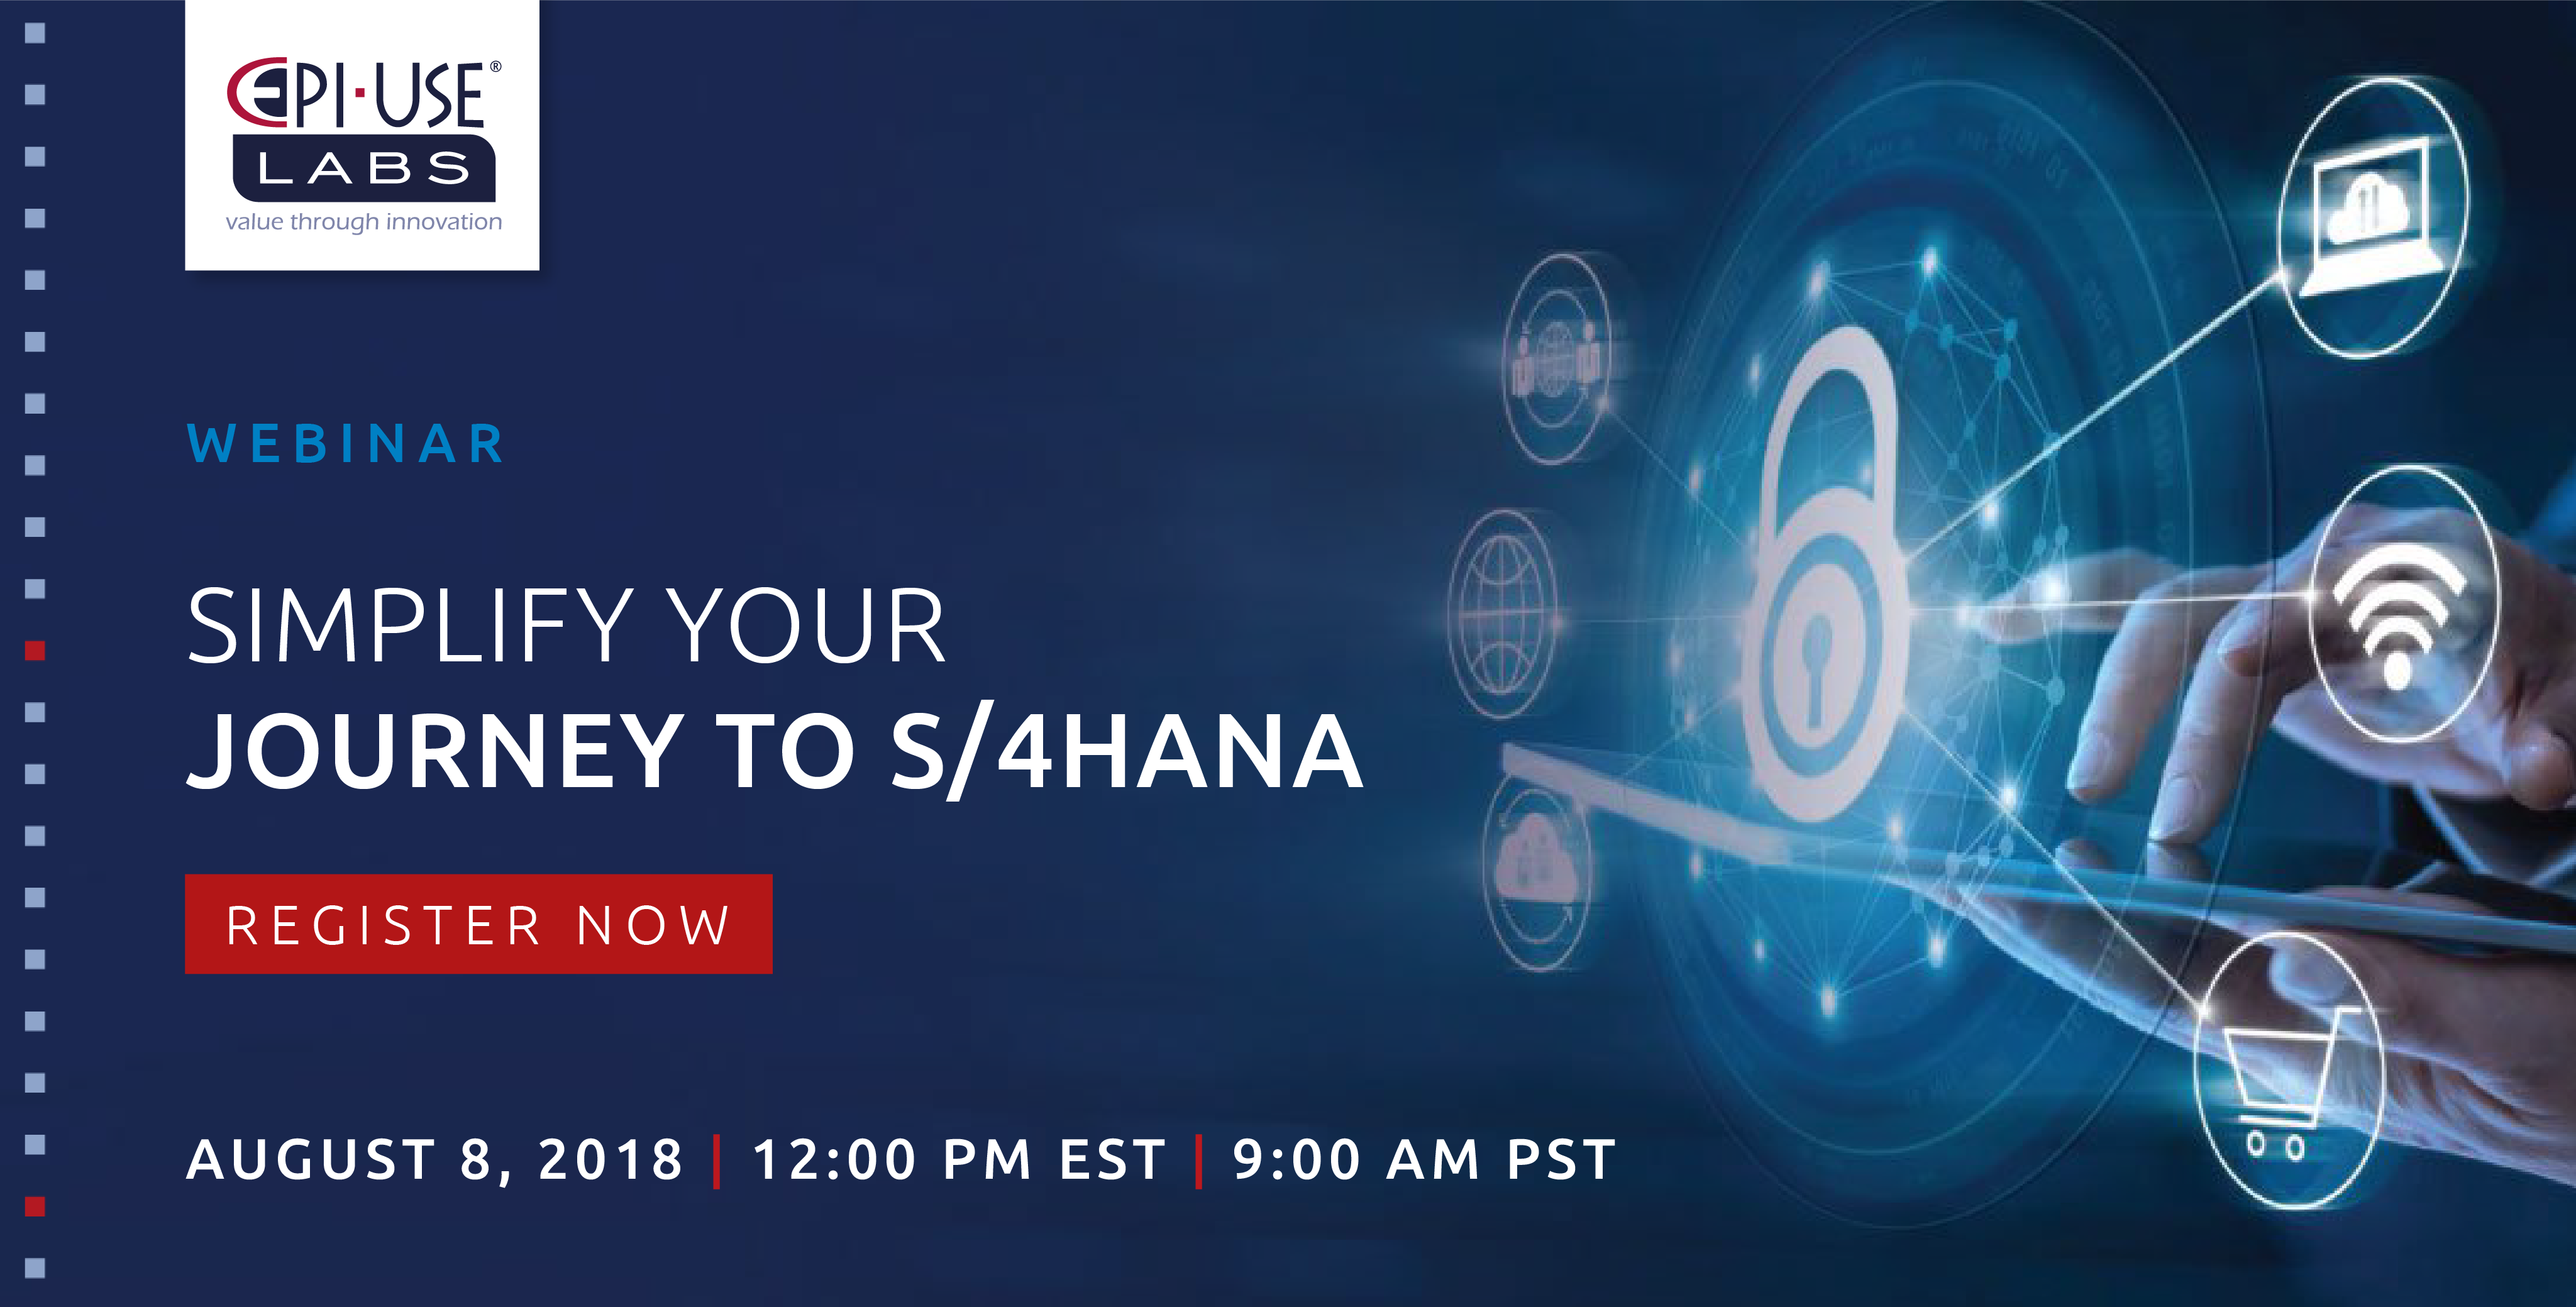 Simplify your journey to S/4 HANA